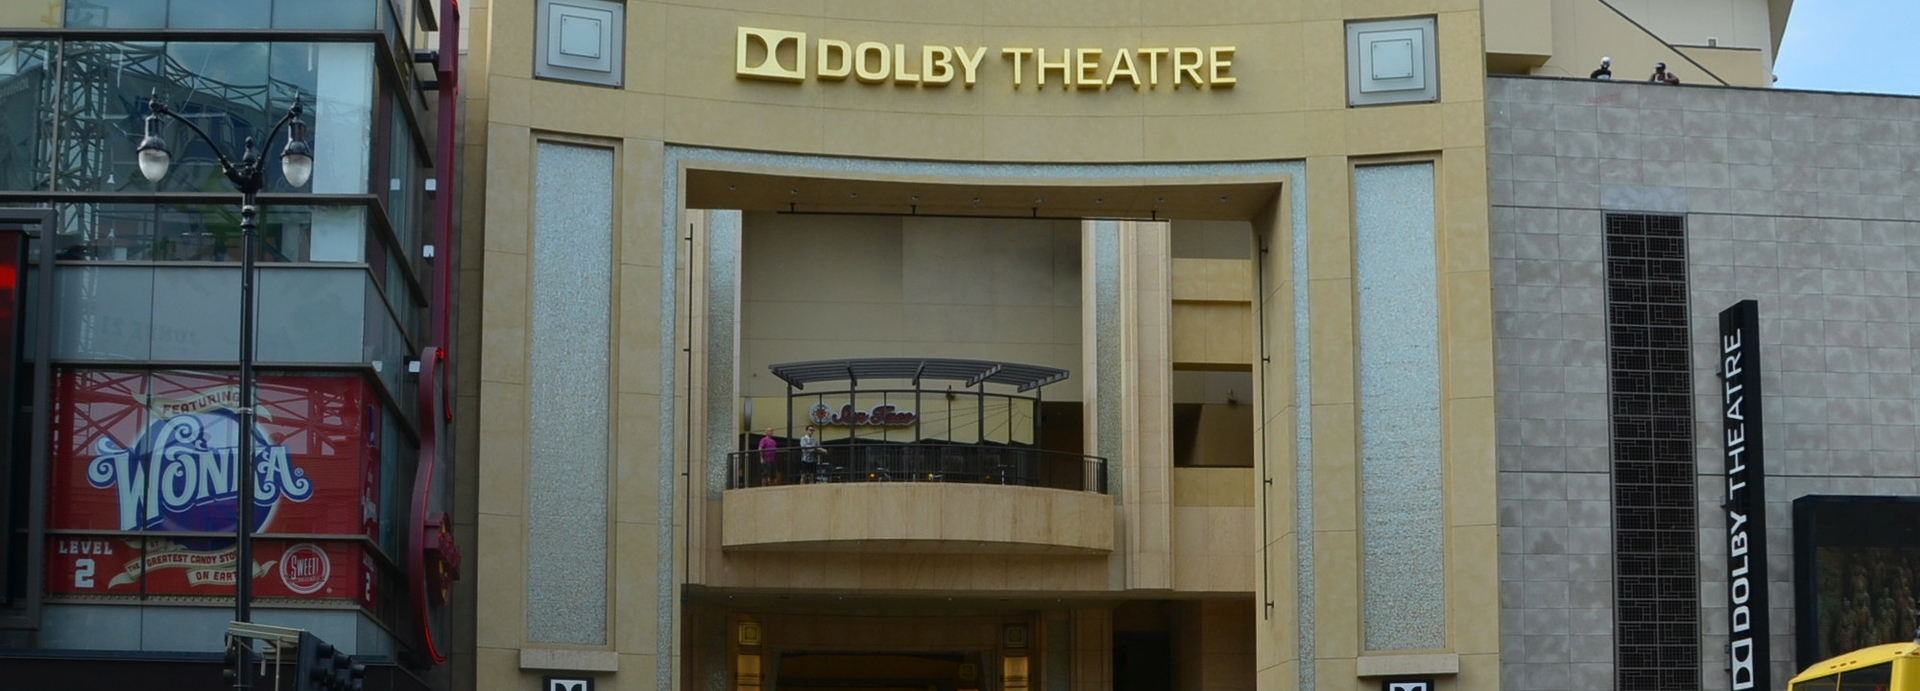 Dolby_Theatre